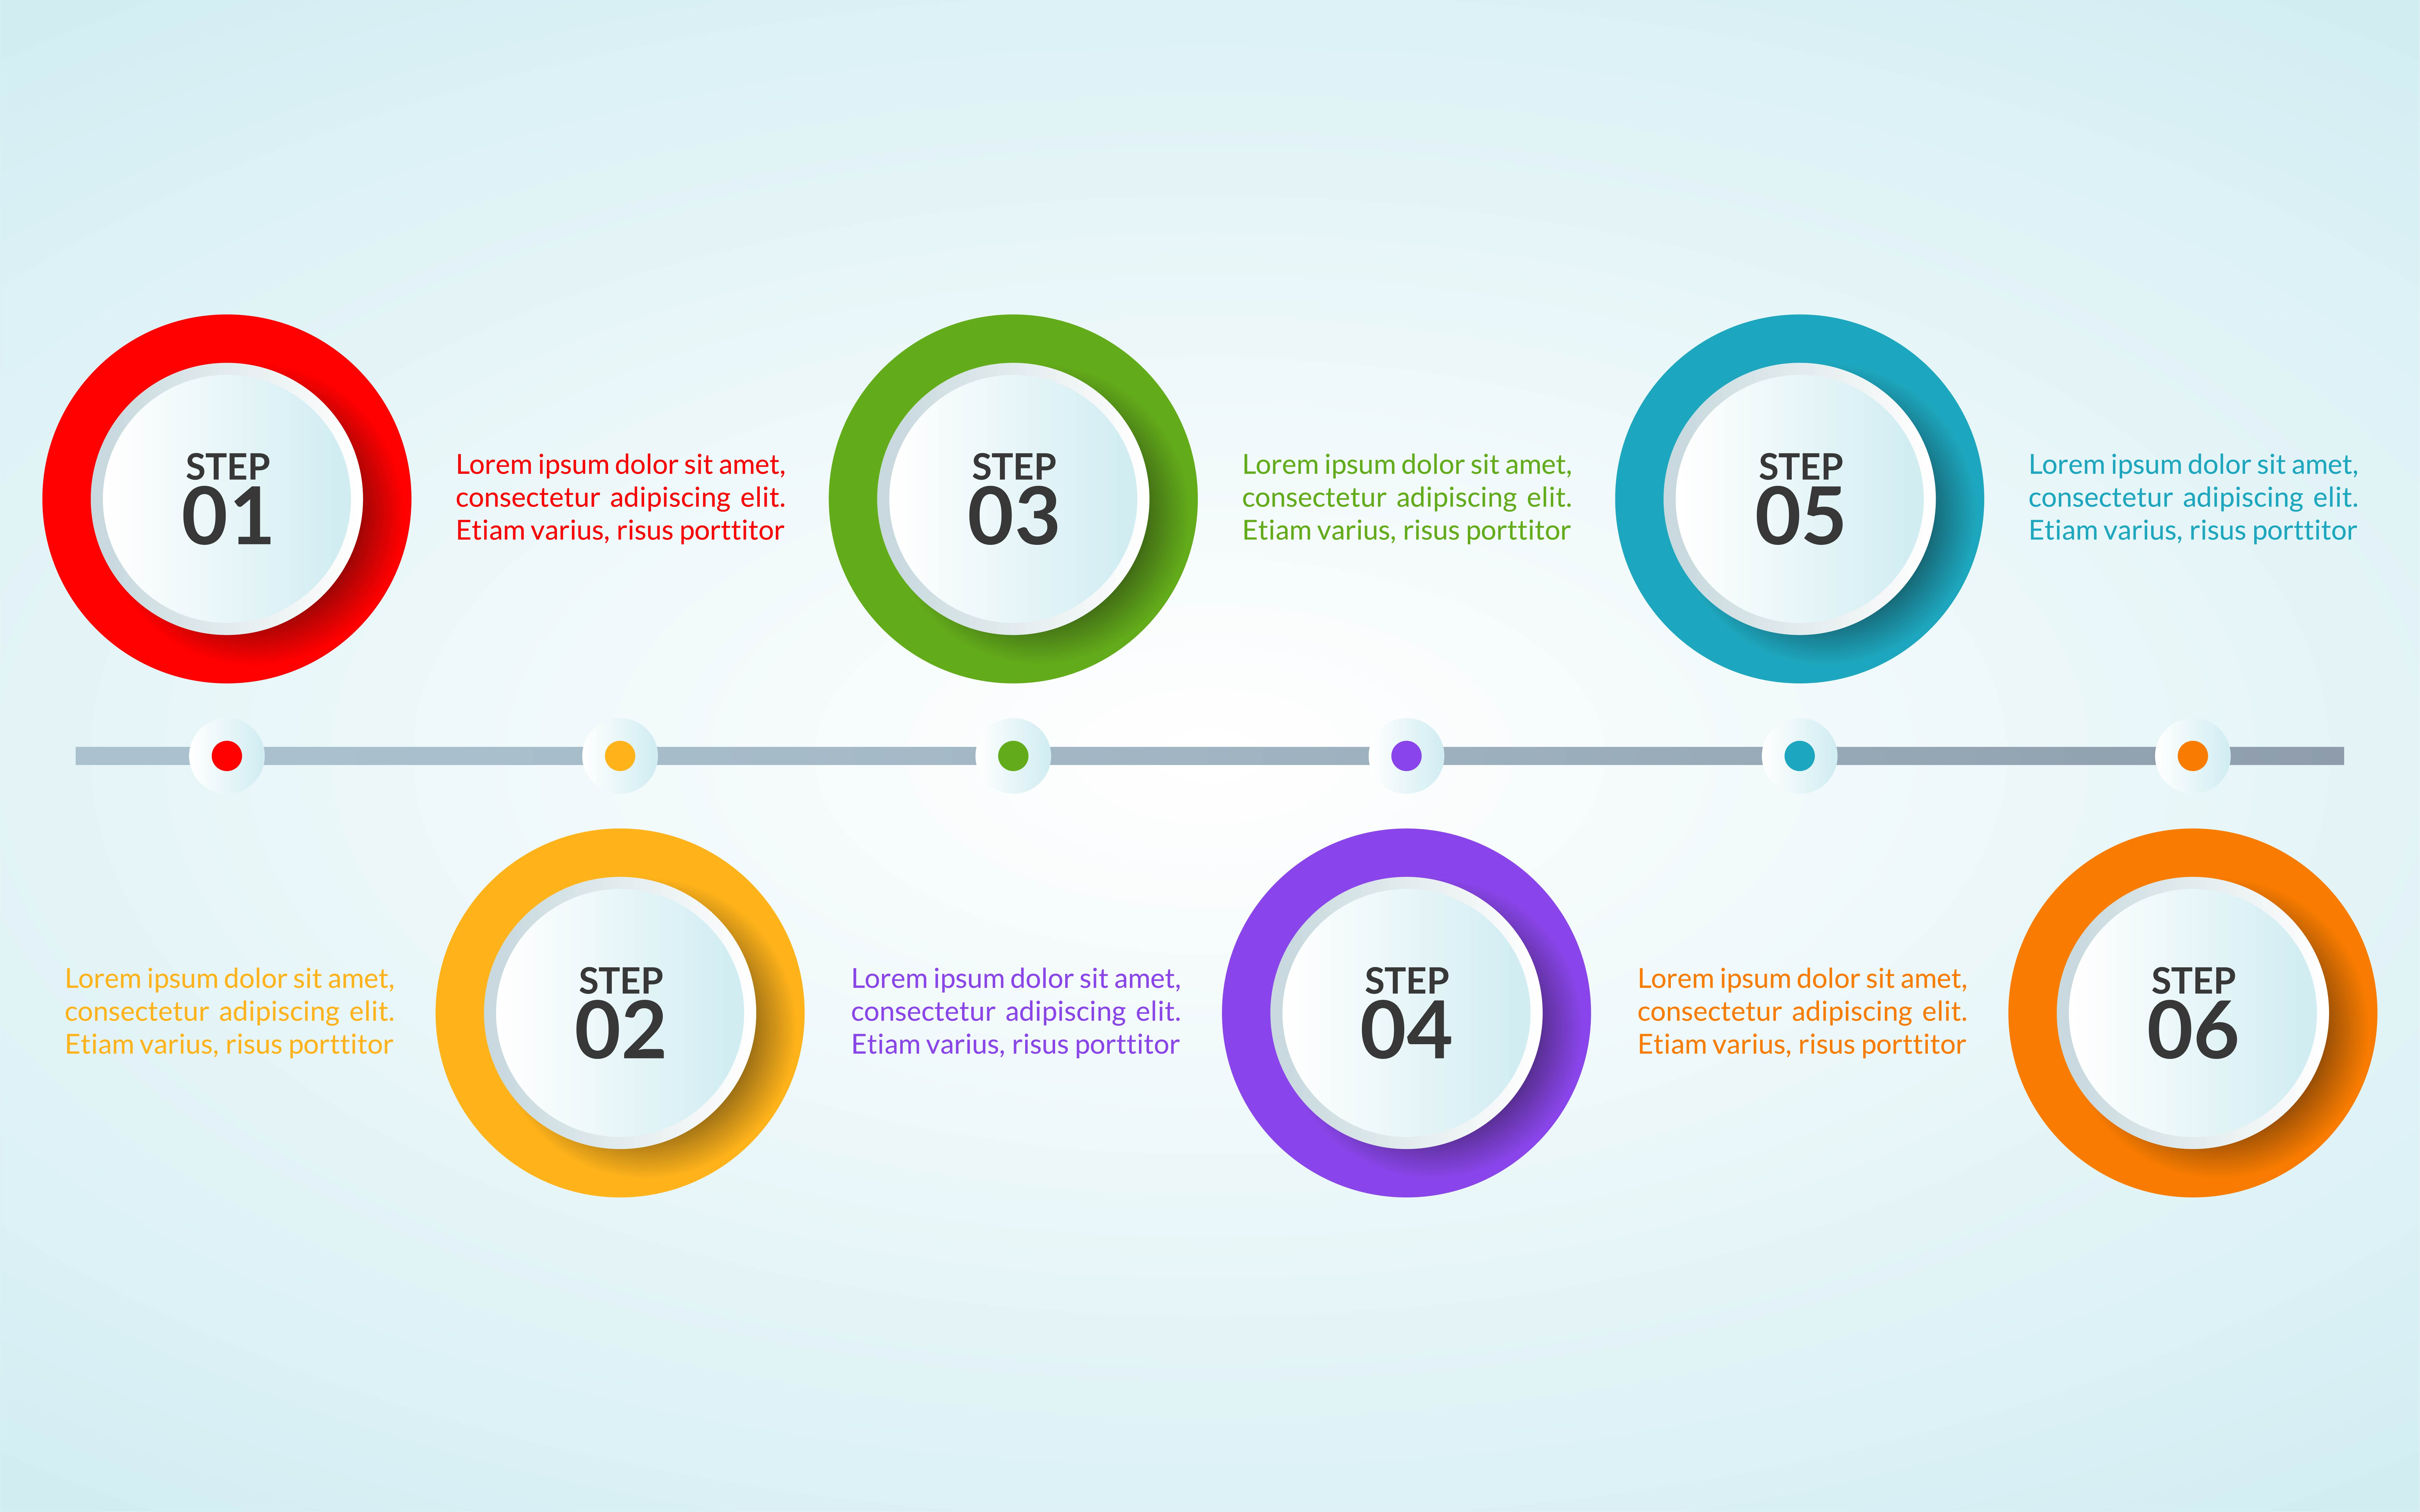 infographic template of step or workflow diagram poster